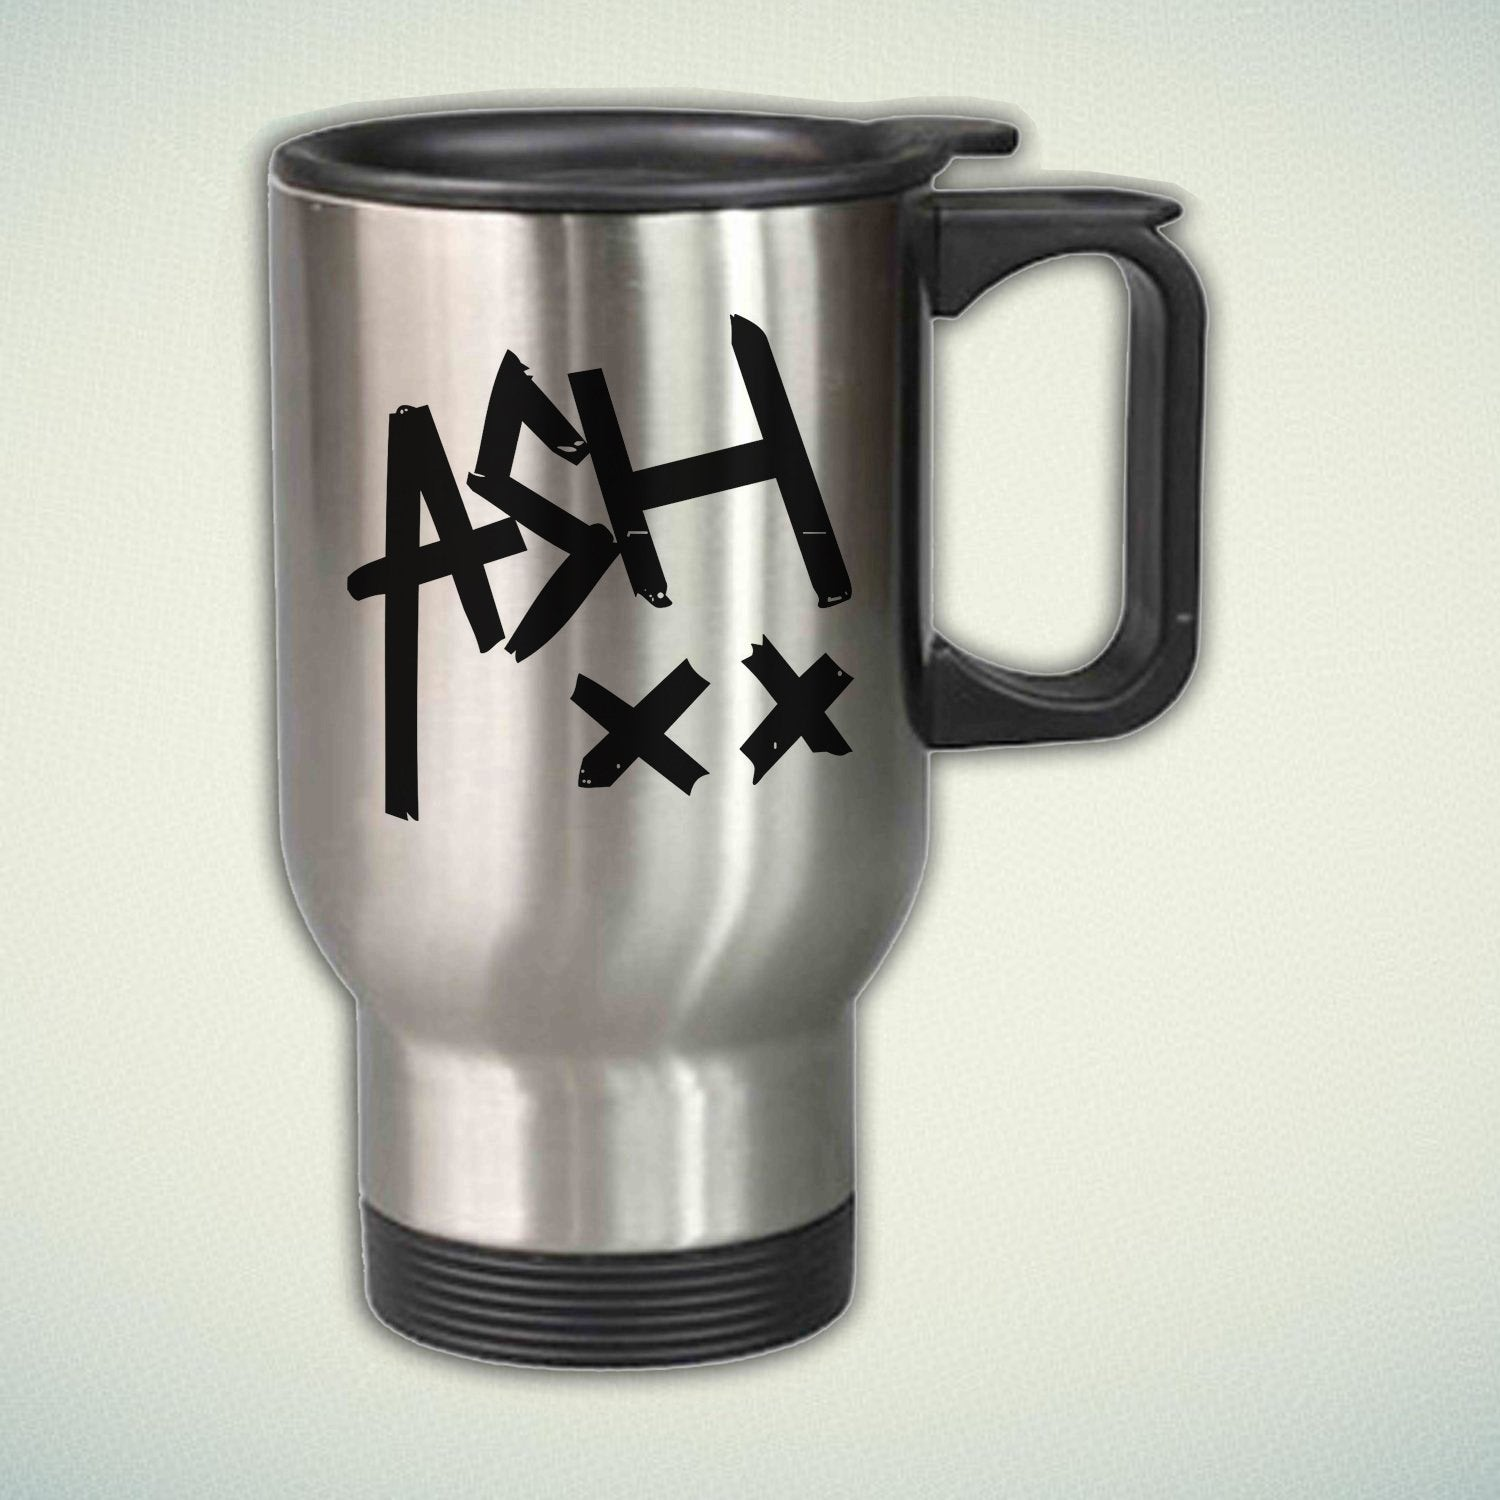 Ash xx, Ashton Irwin 5 SOS 14oz Stainless Steel Travel Mug